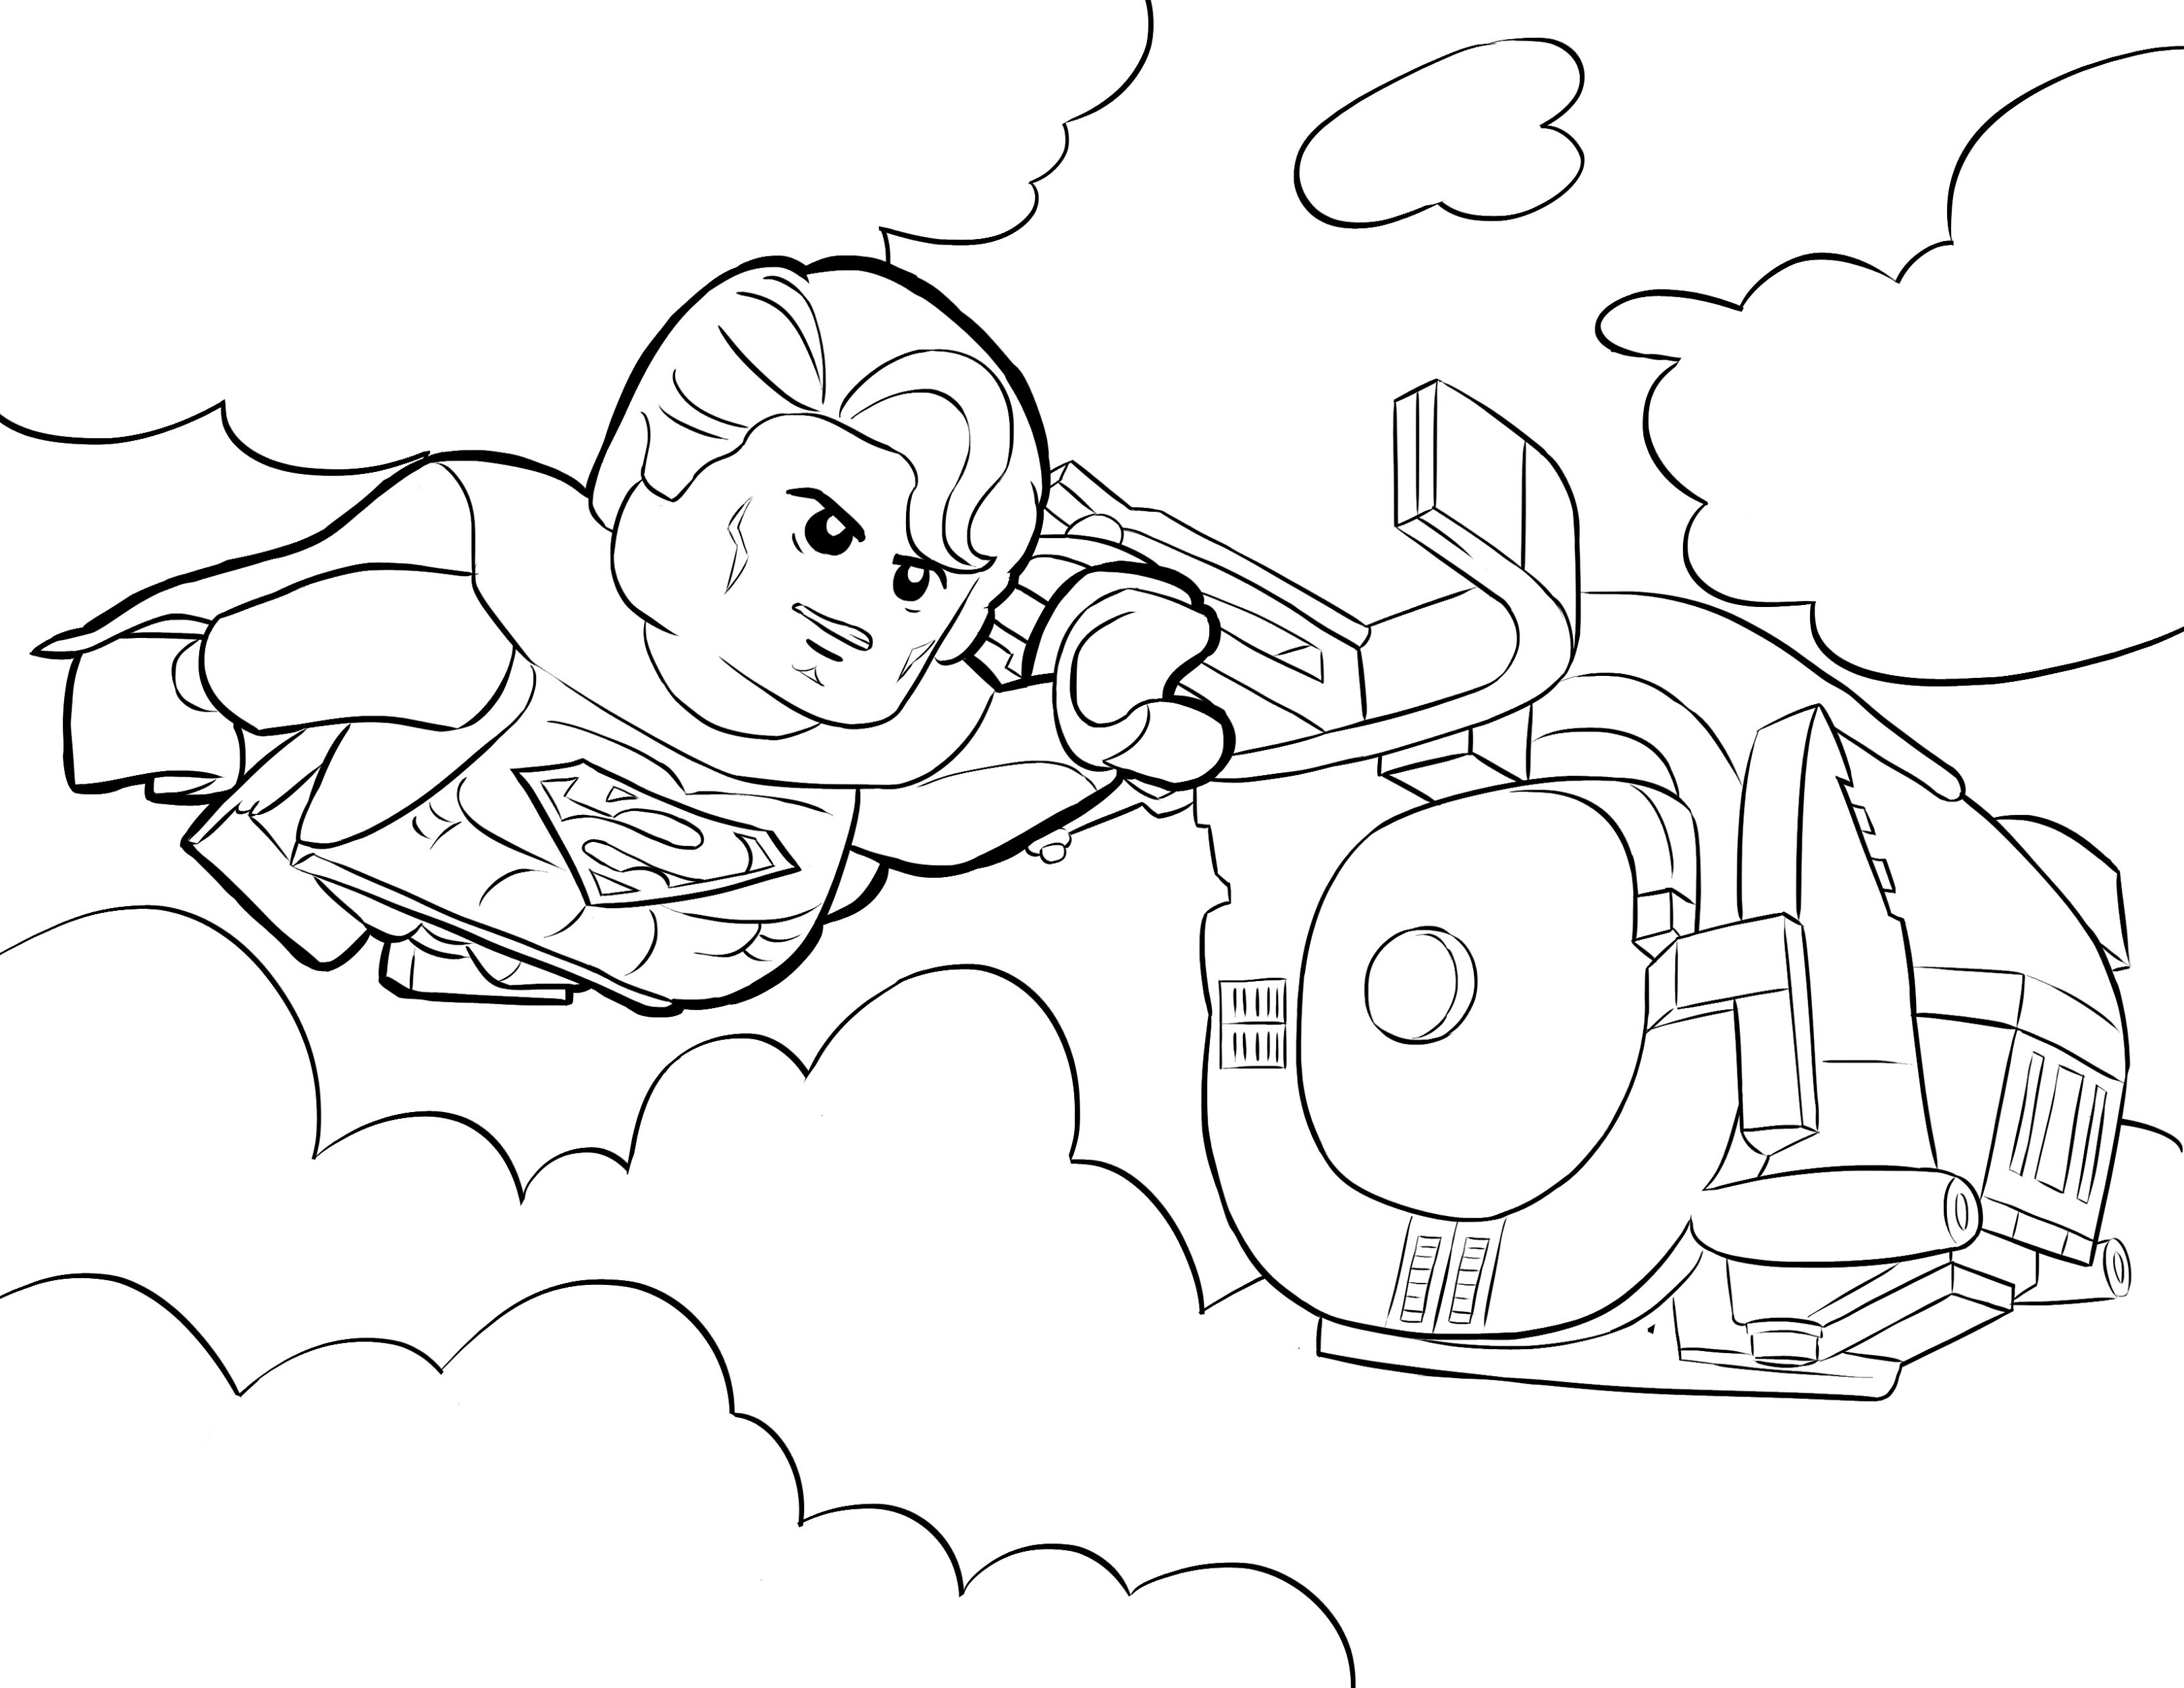 Lego Superman Coloring Pageslego Superman Coloring Pages